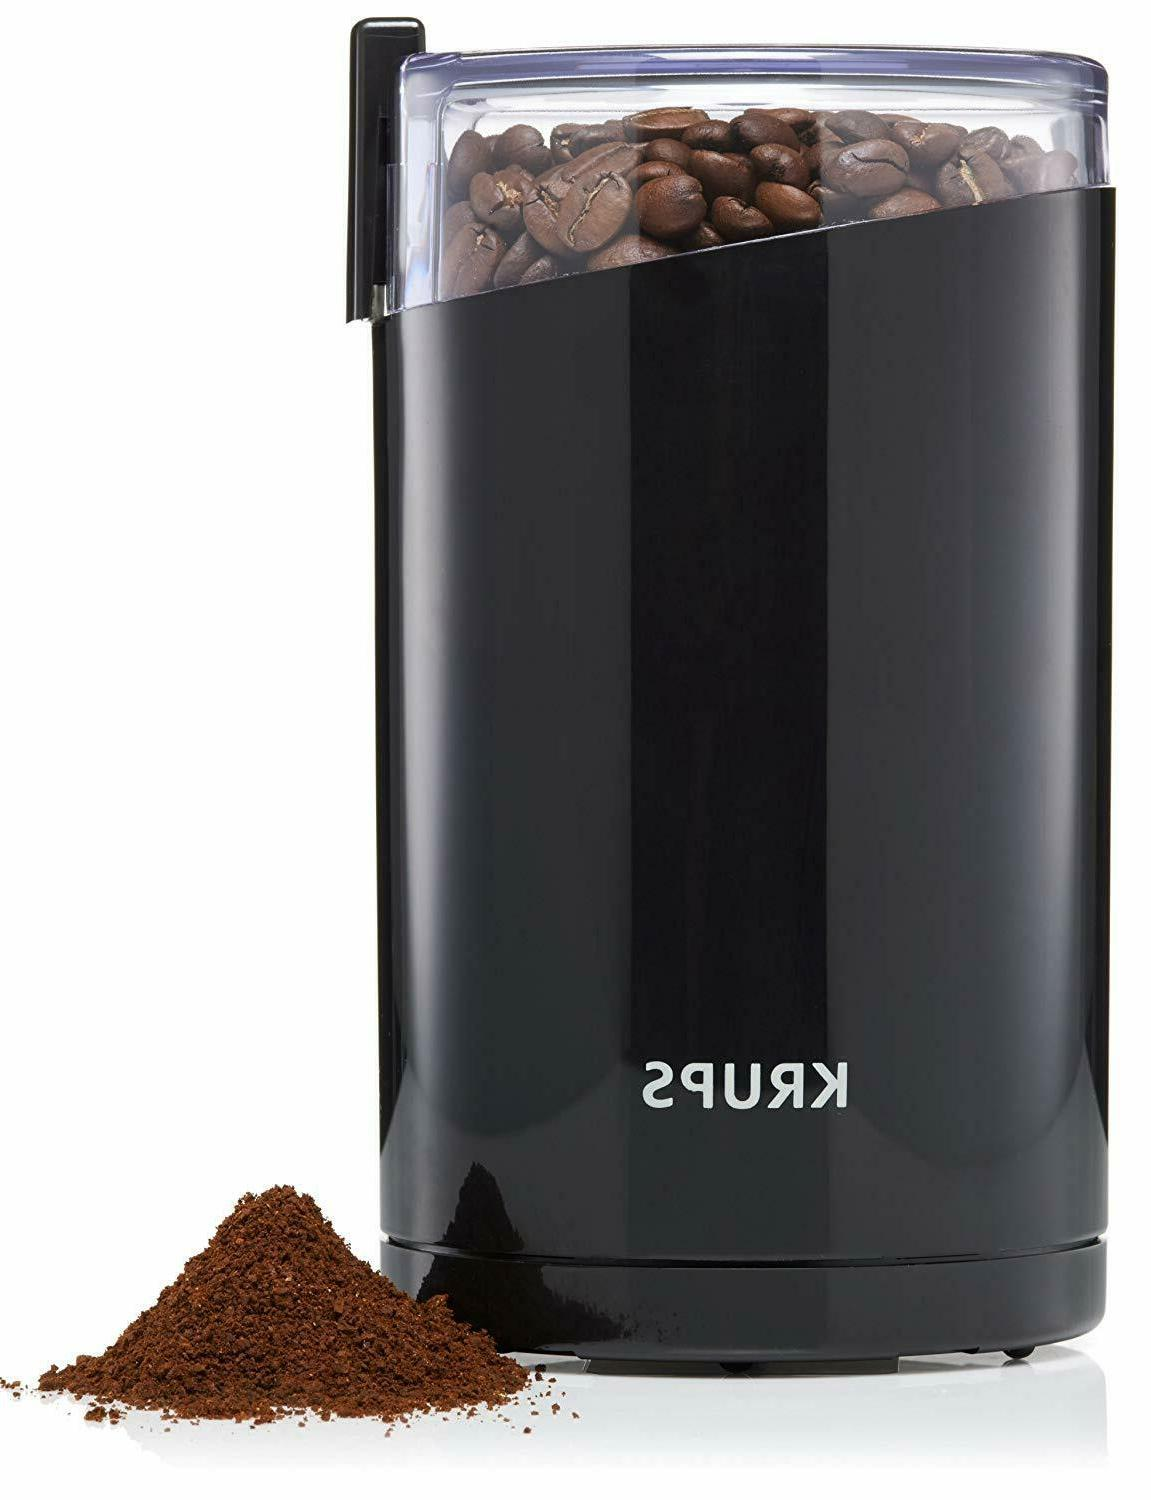 f203 electric spice and coffee grinder